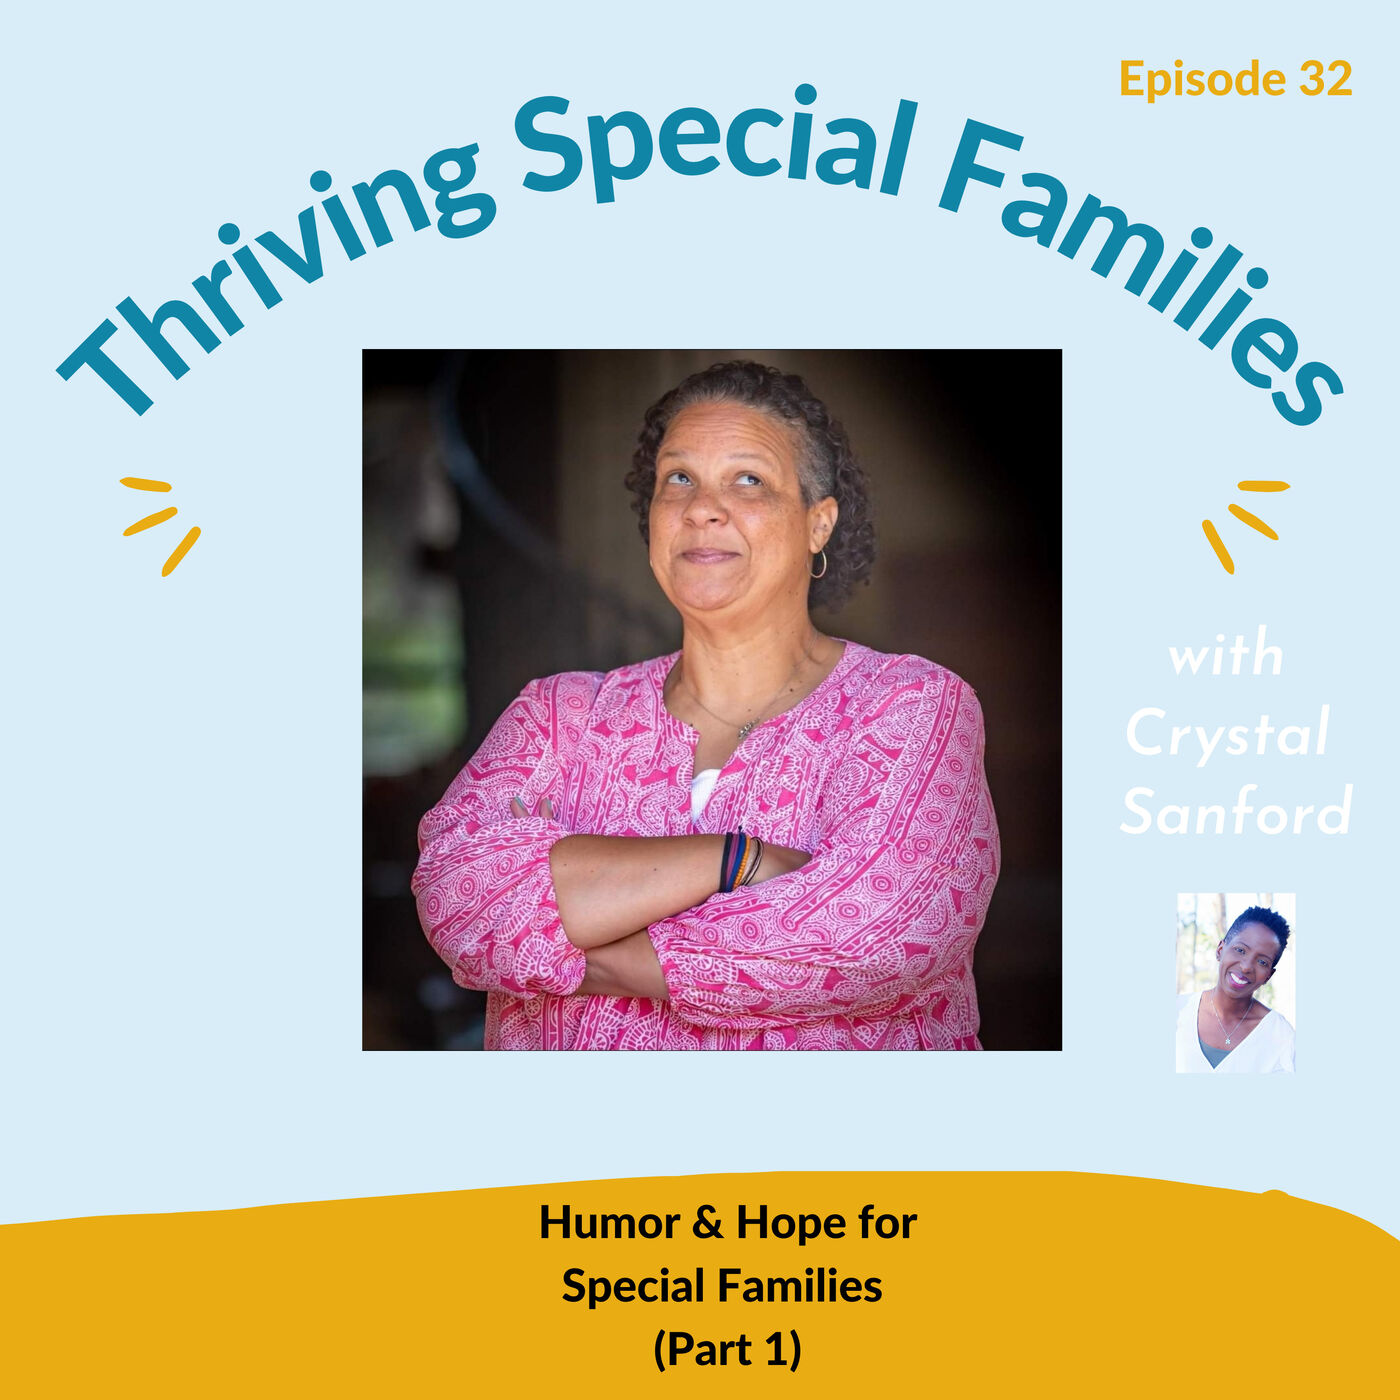 Humor & Hope for Special Families (Part 1)